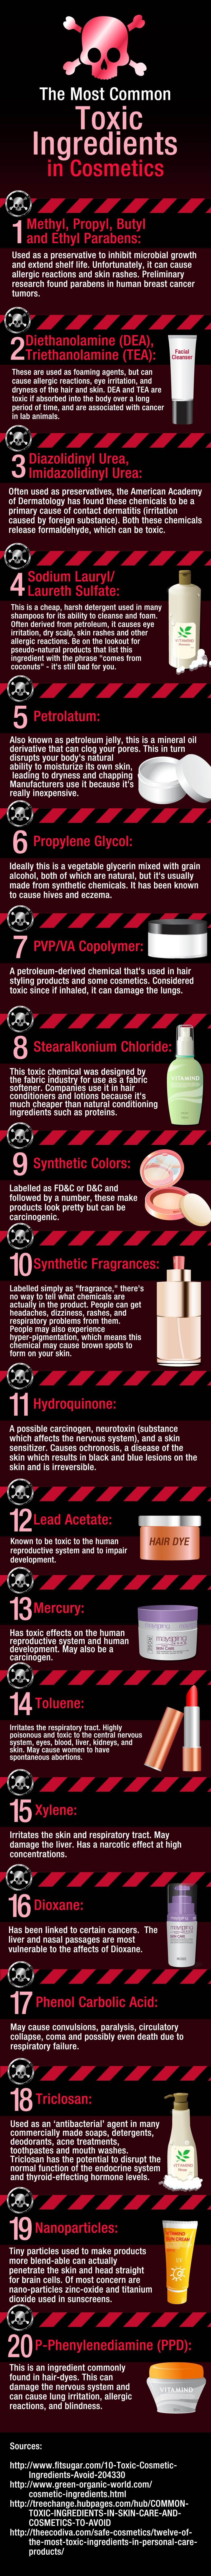 Better Be Safe Than Sorry Stay Away From These Chemicals And Switch Your Skincare Routine To All Natural Natural Skin Care Natural Cosmetics Organic Skin Care